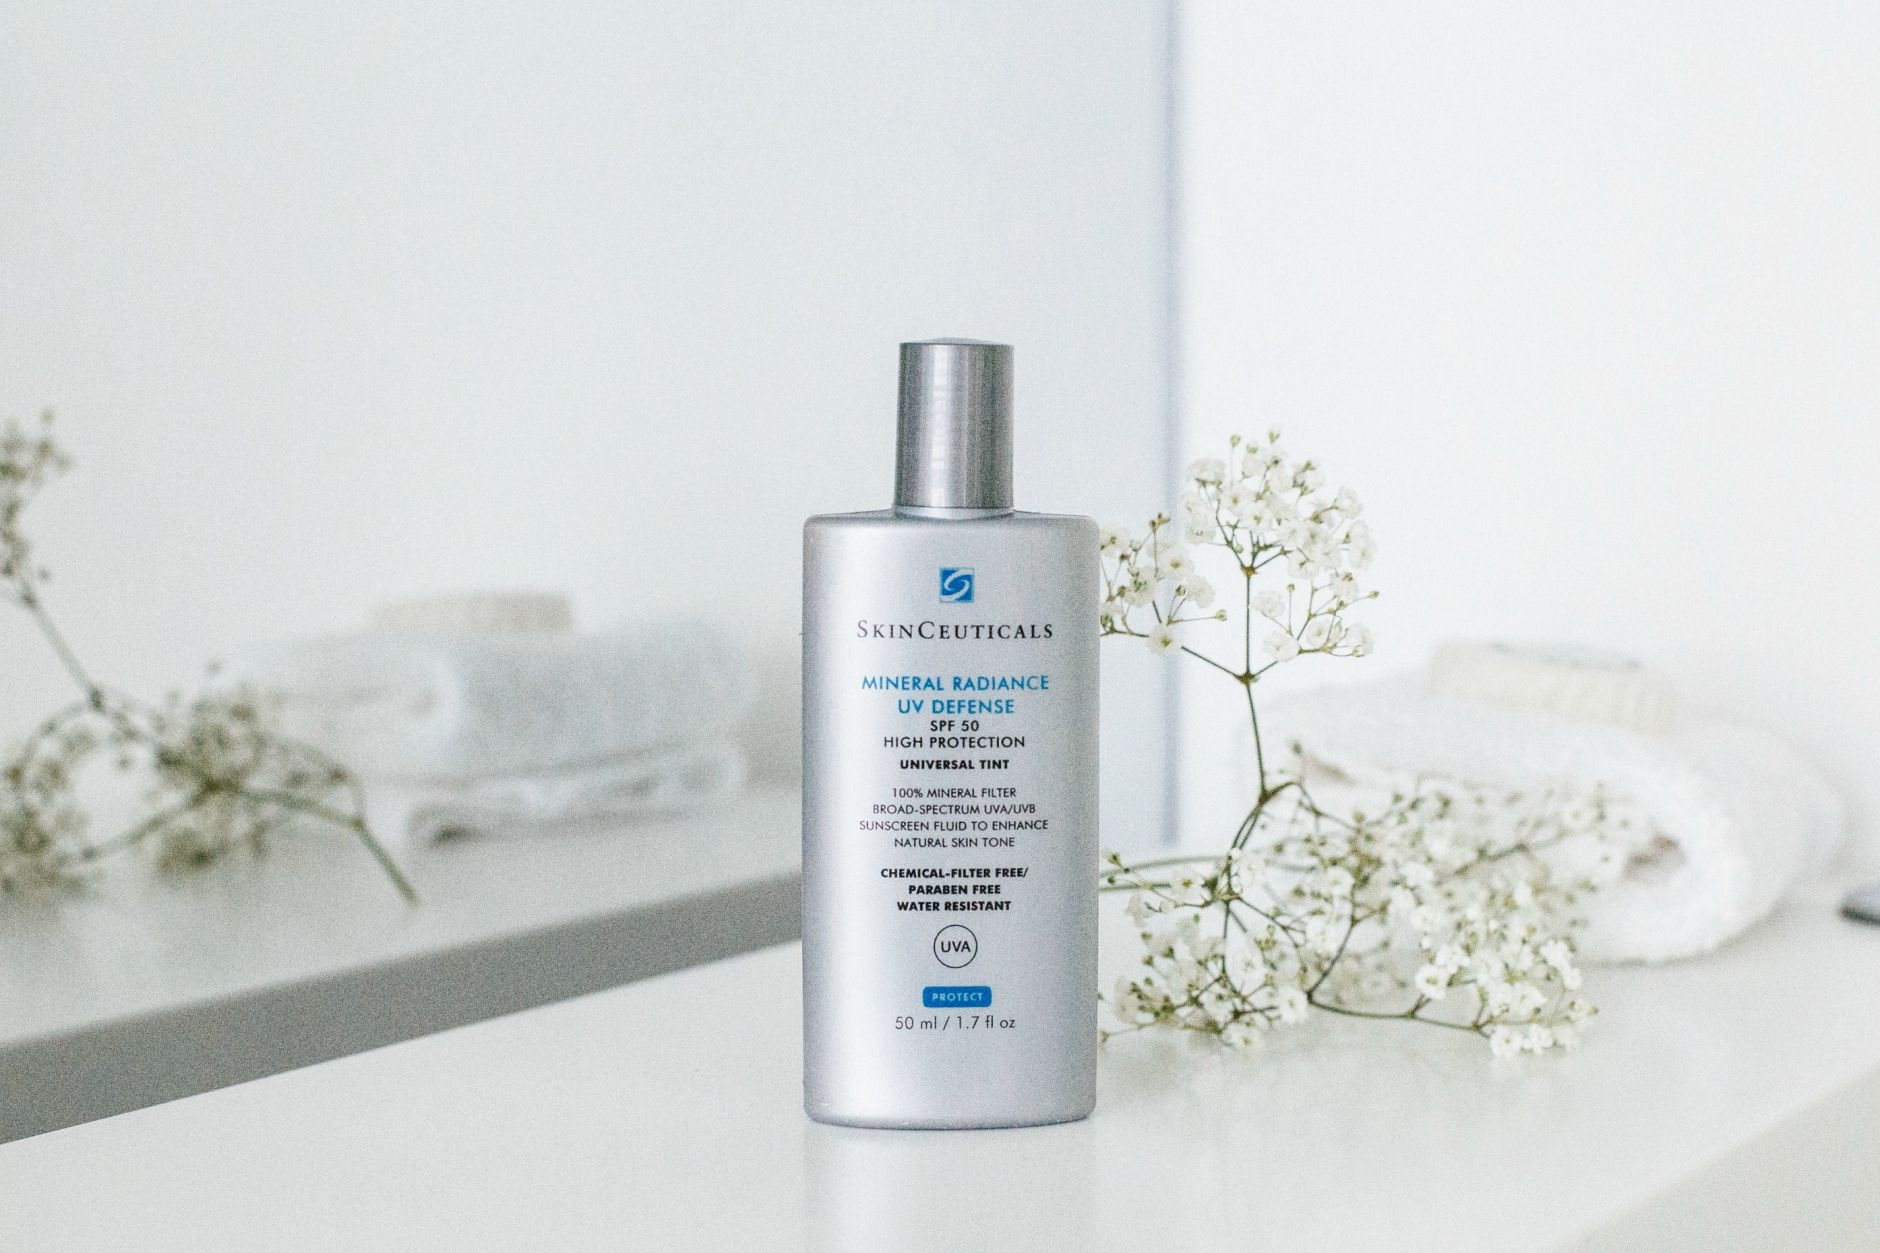 SkinCeuticals-Mineral-Radiance-UV-Defense-SPF-50-High-Protection-Universal-Tint-Disi-Couture